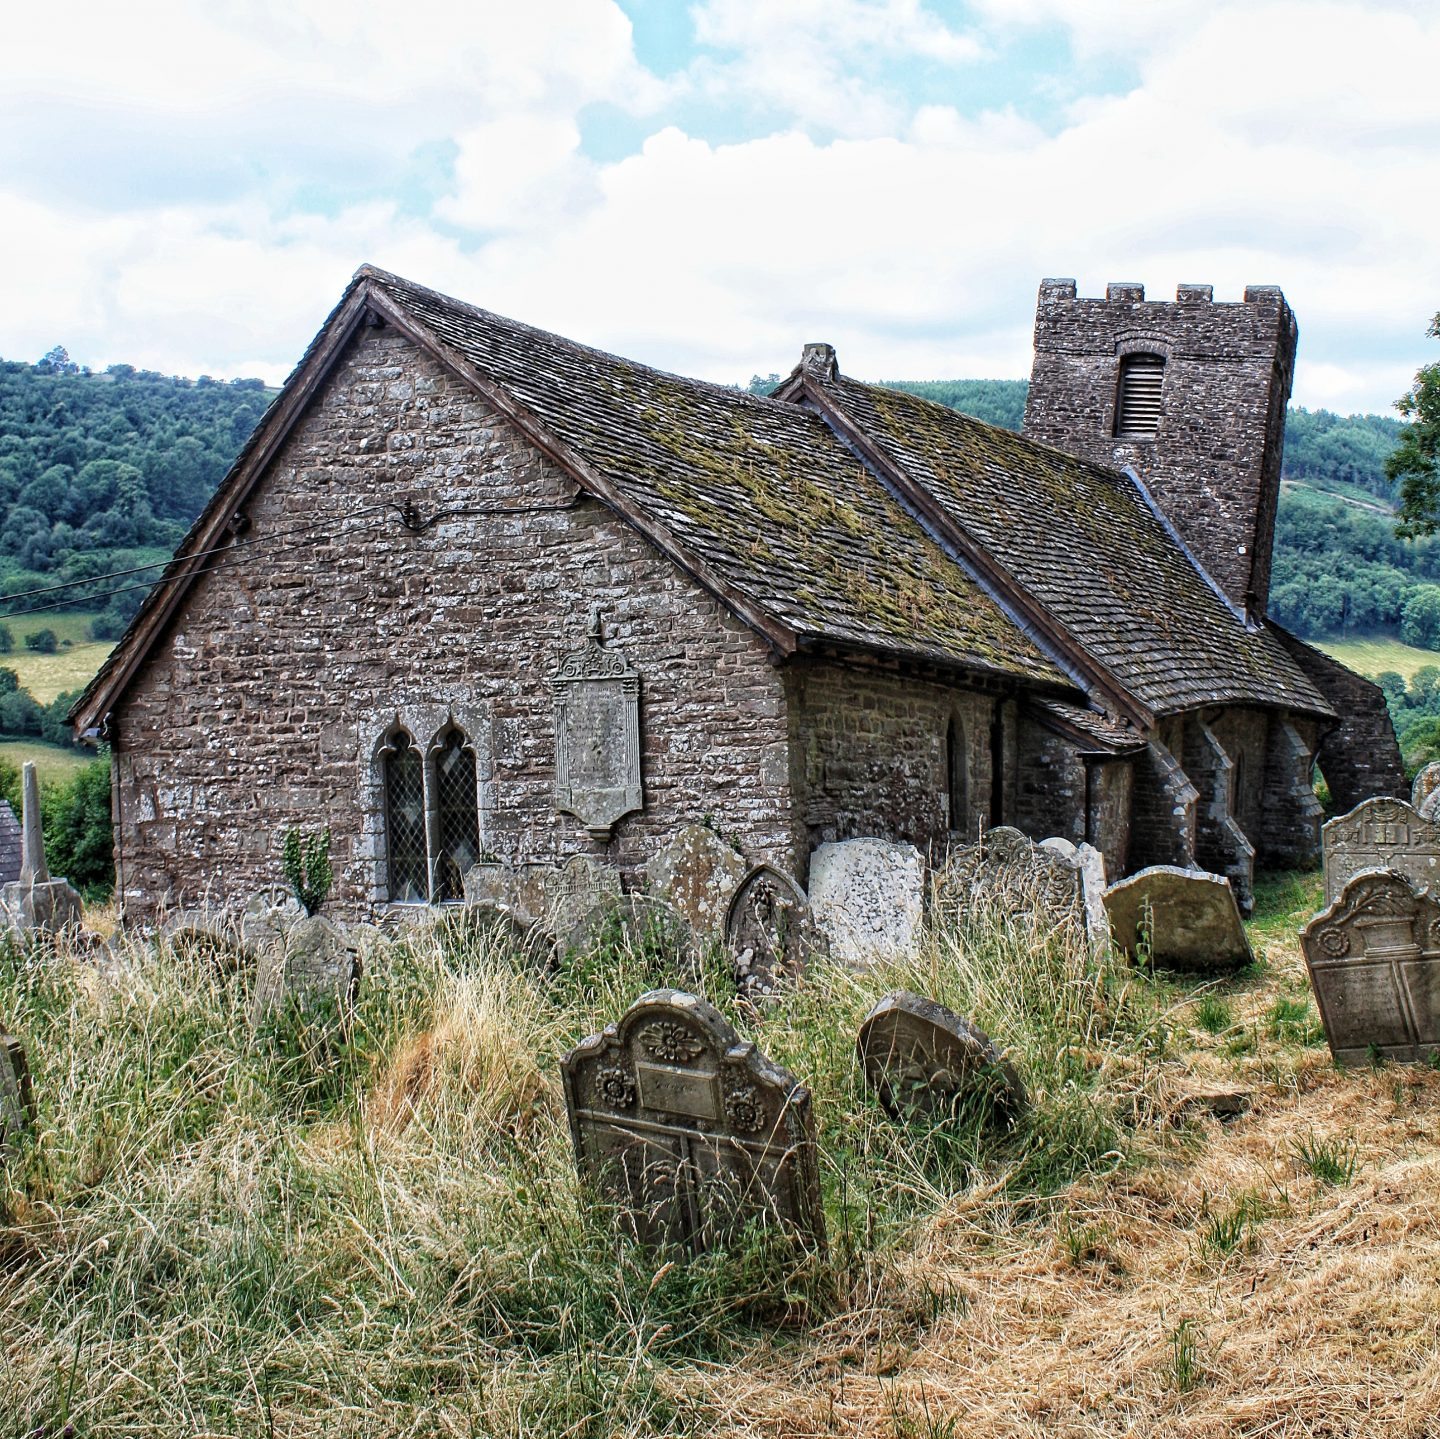 The Crooked Church – St Martin's Church, Cwmyoy